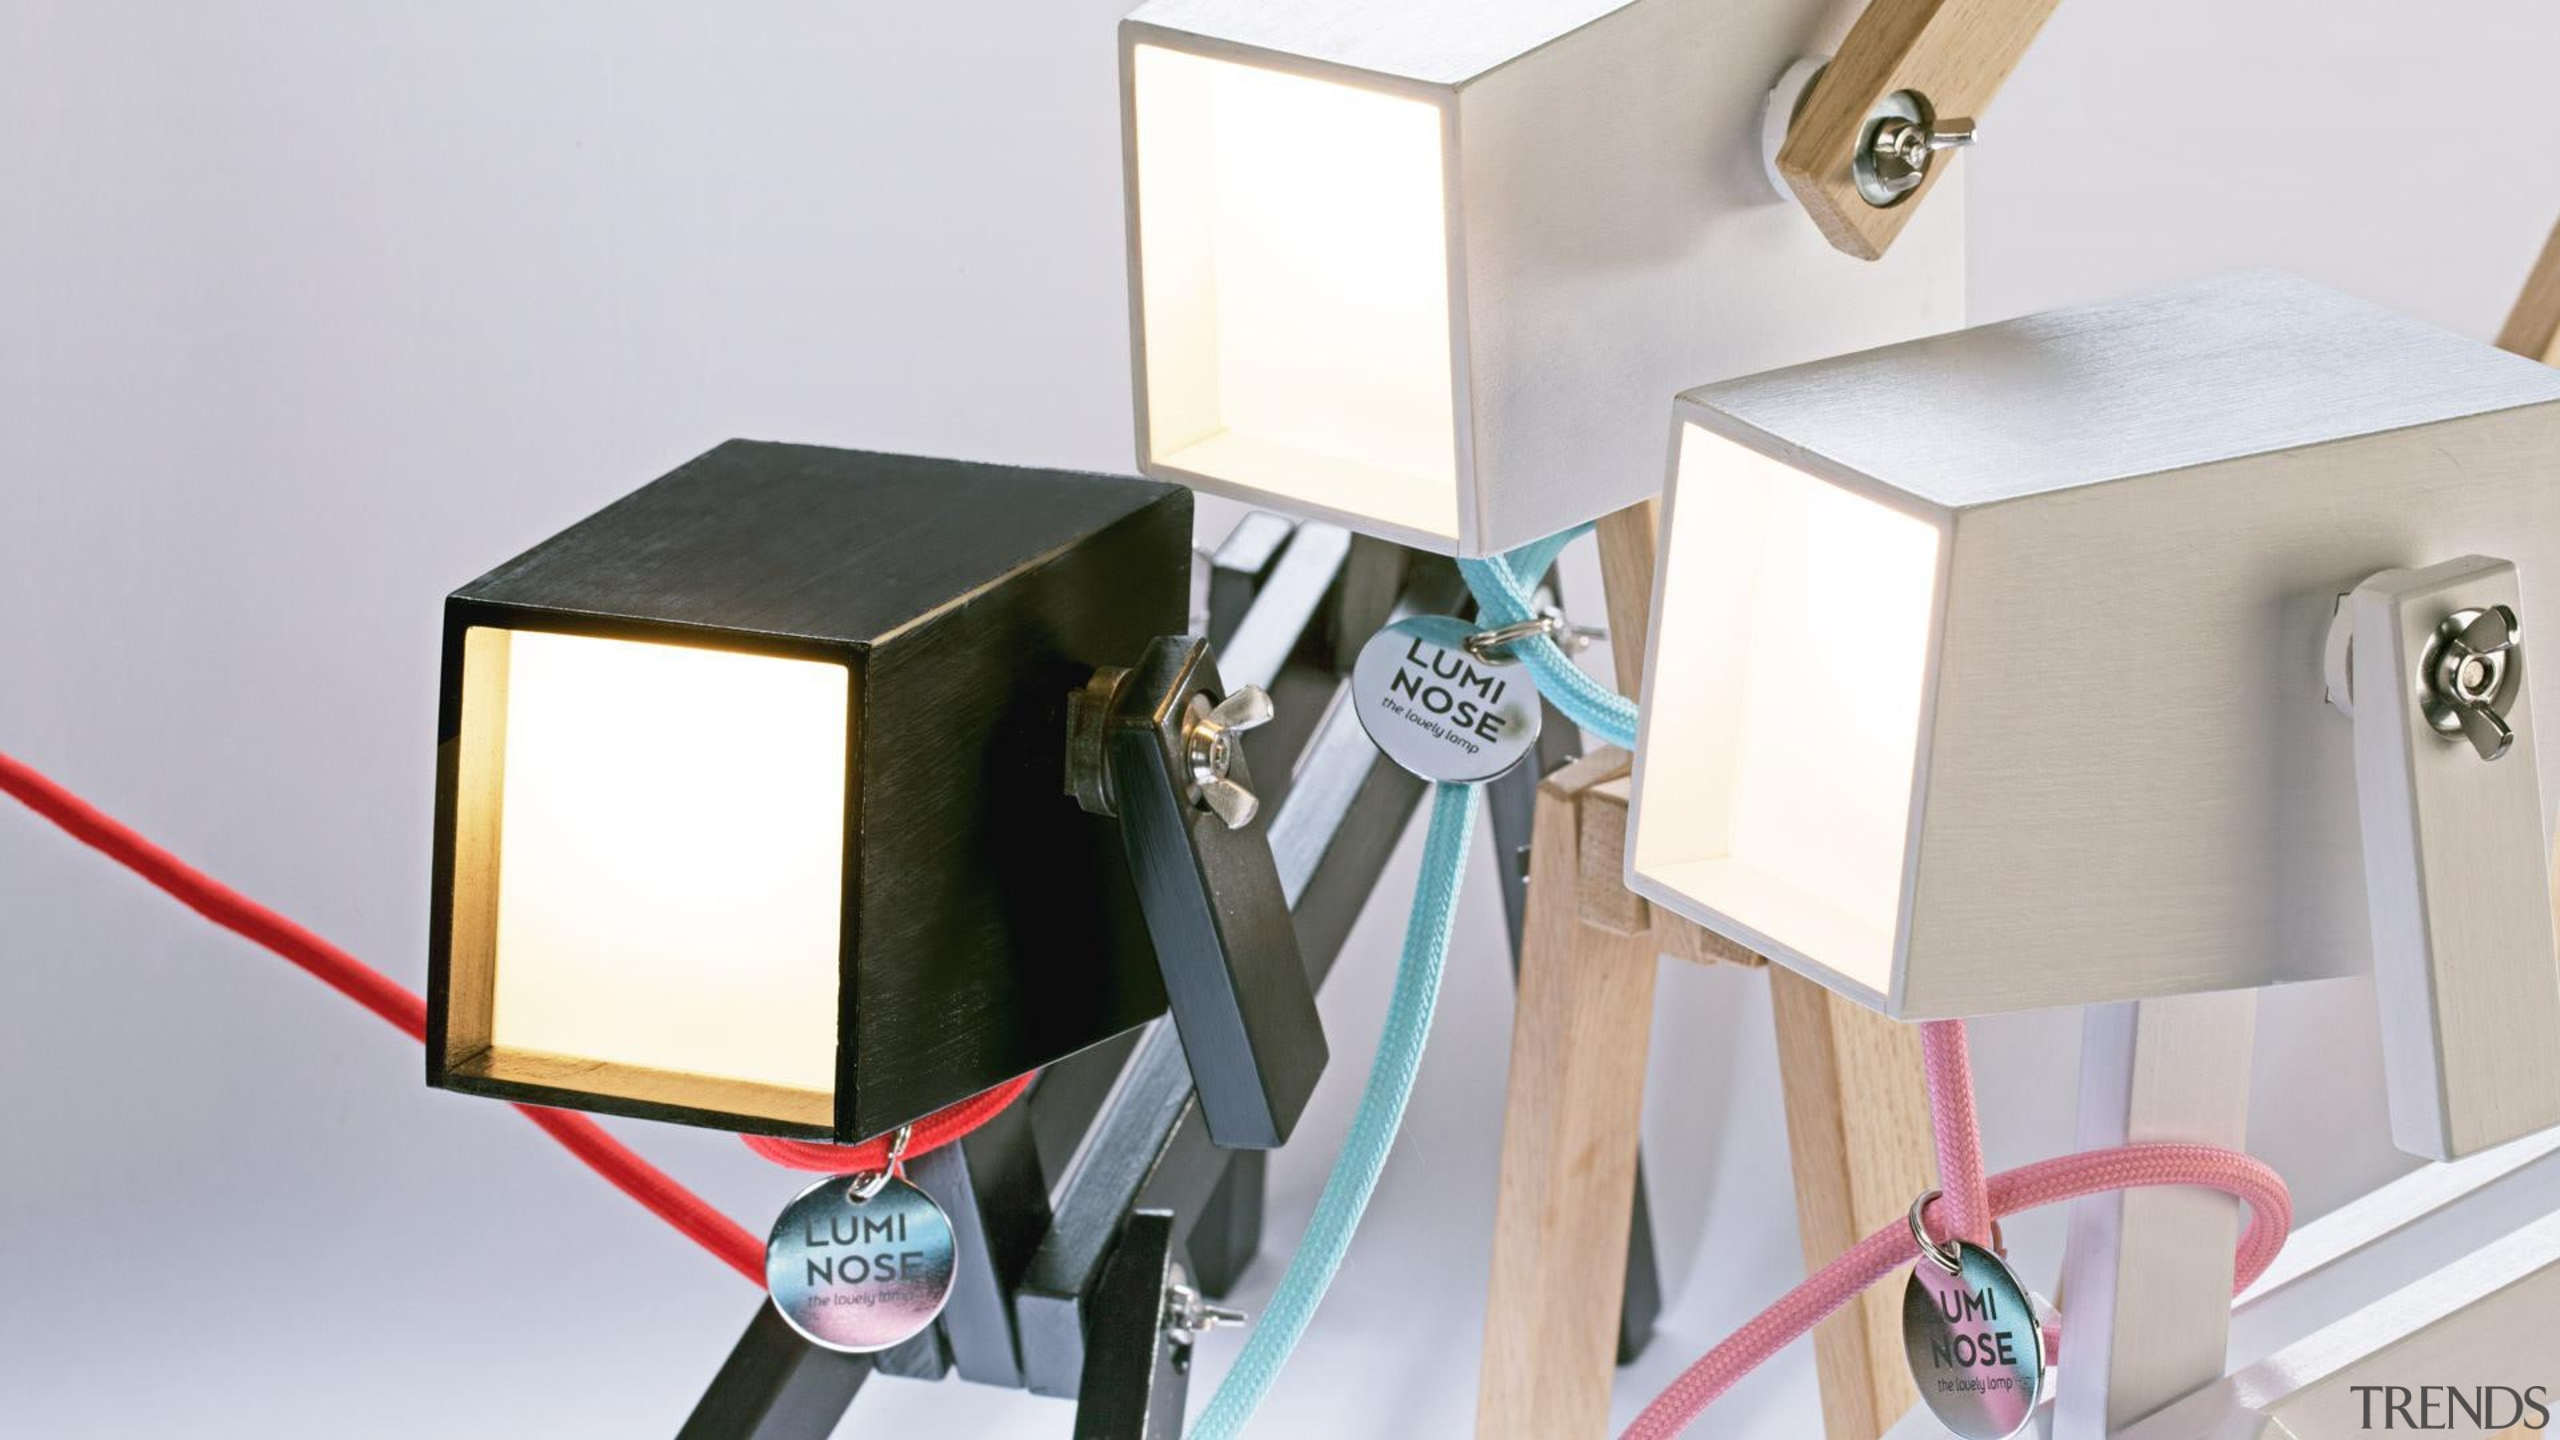 Luminose is a new project by Budapest-based designers product design, technology, gray, white